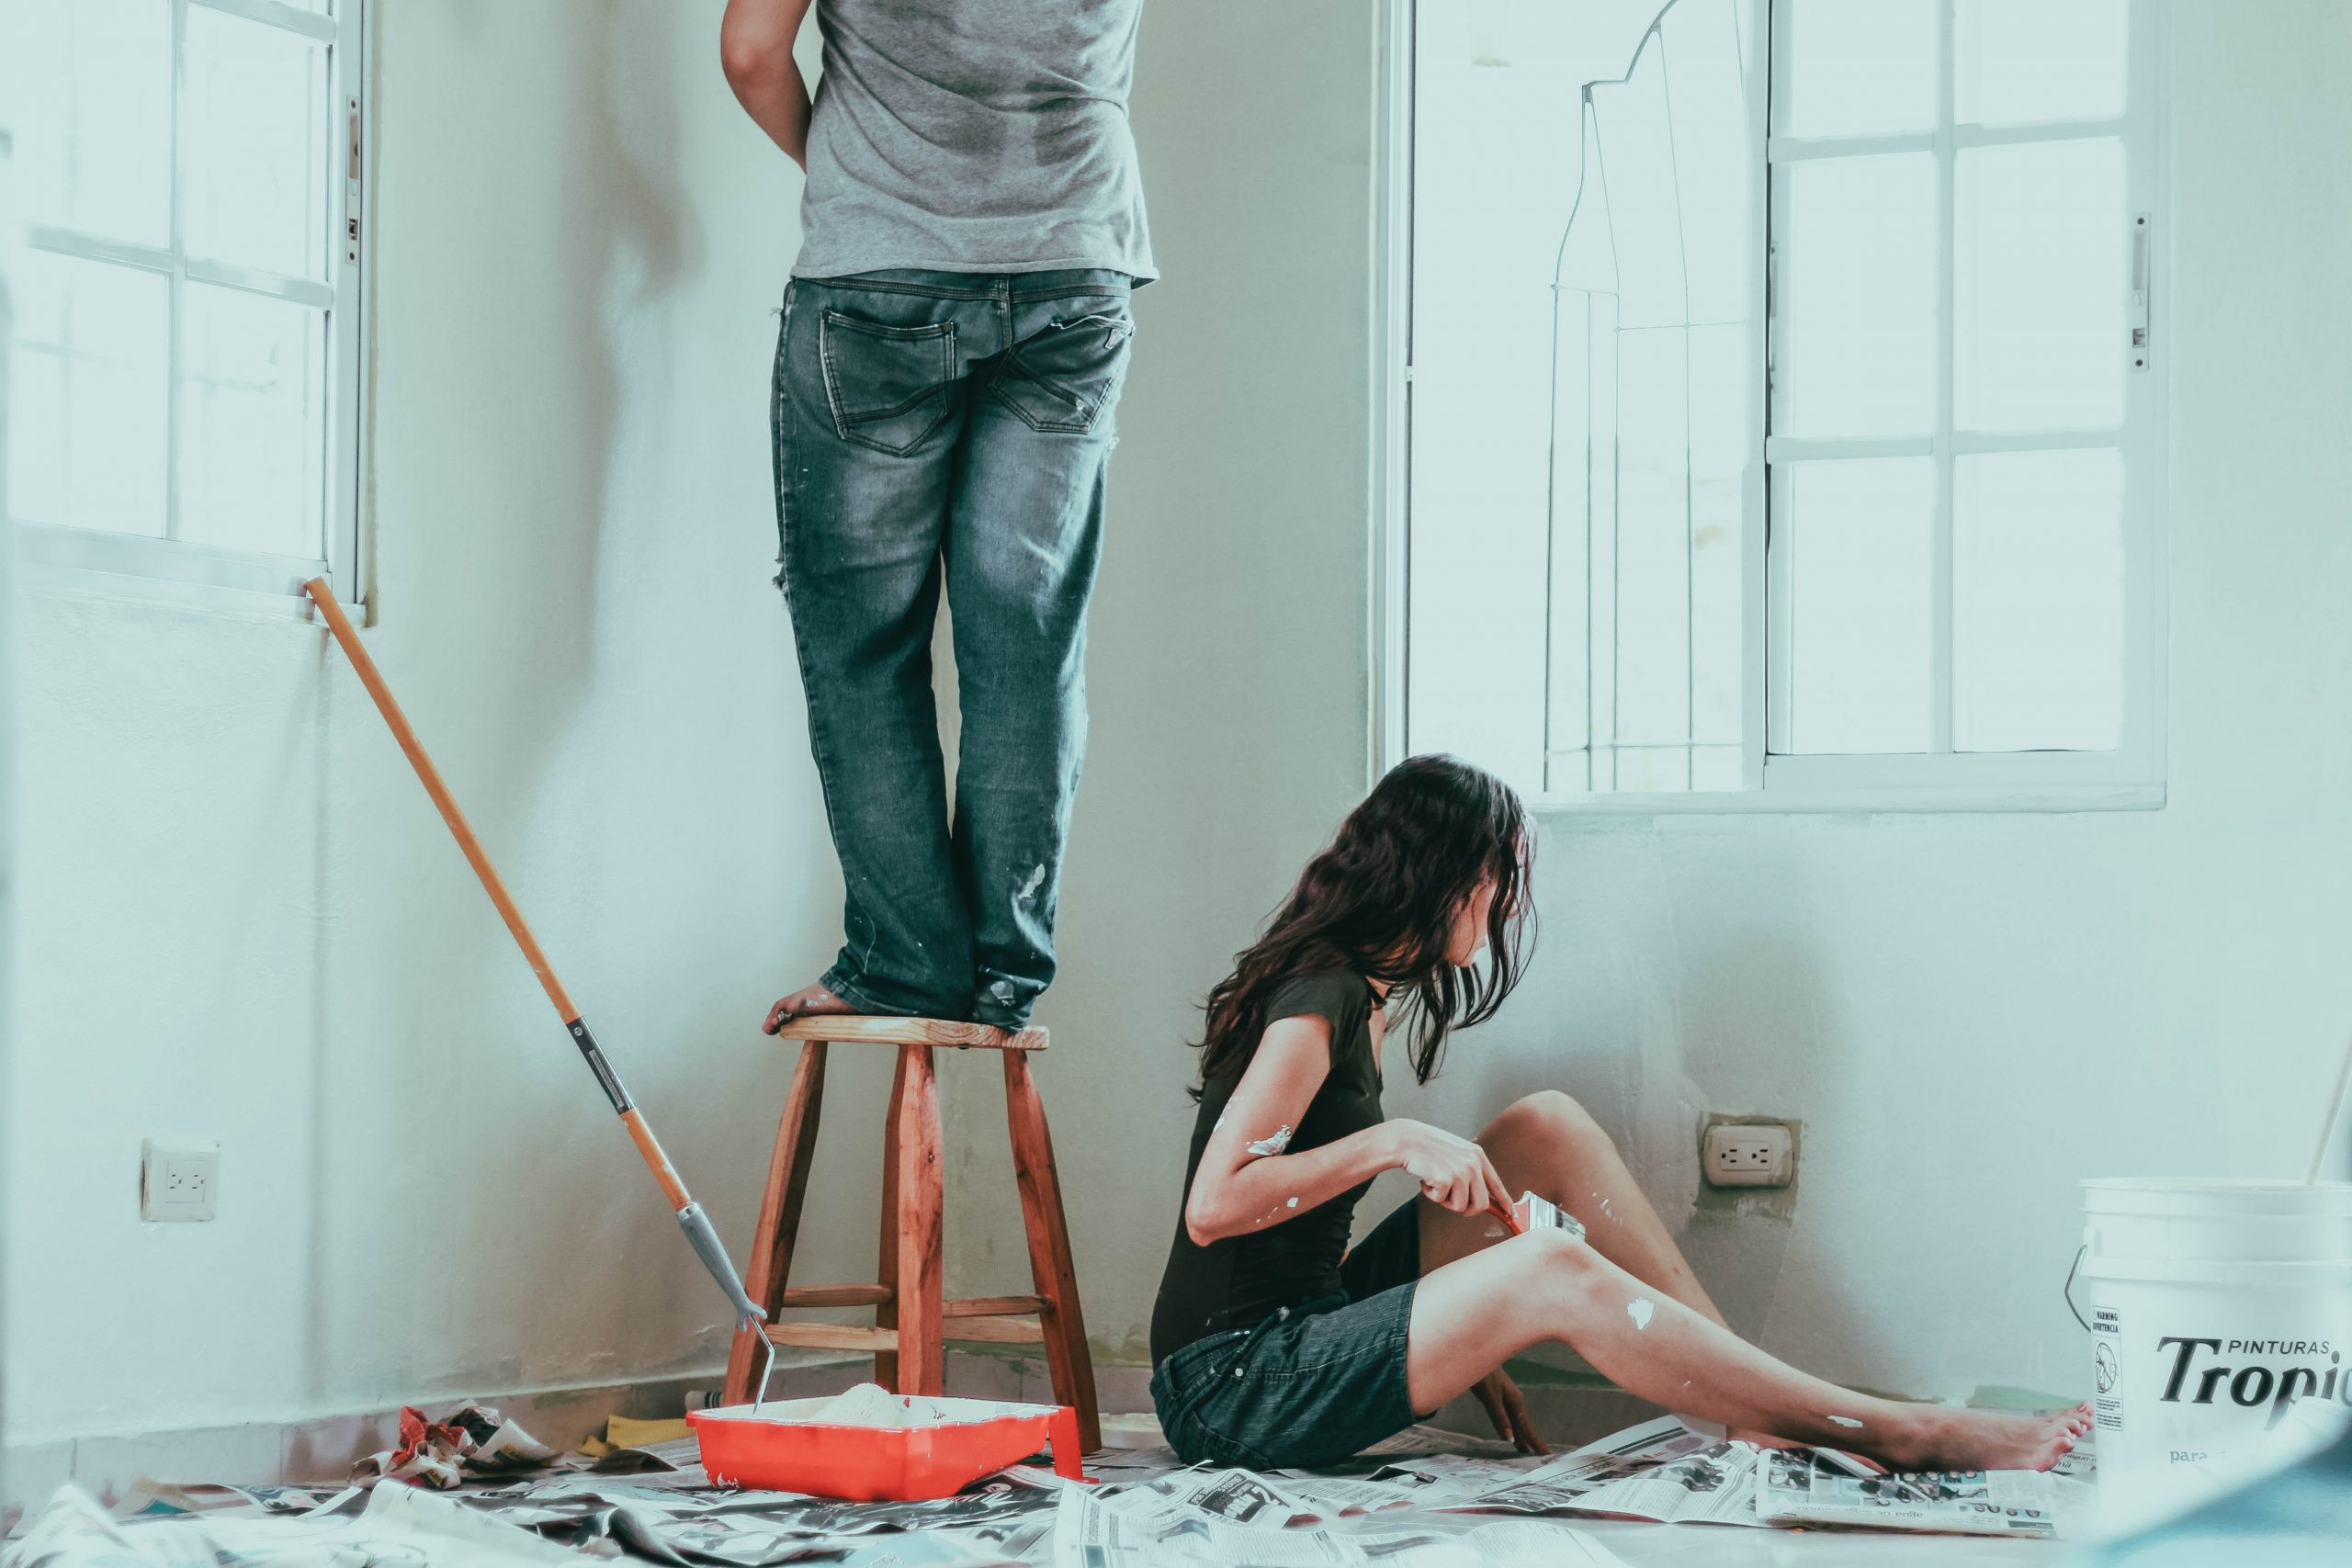 Simple renovations that will increase your home's resale value